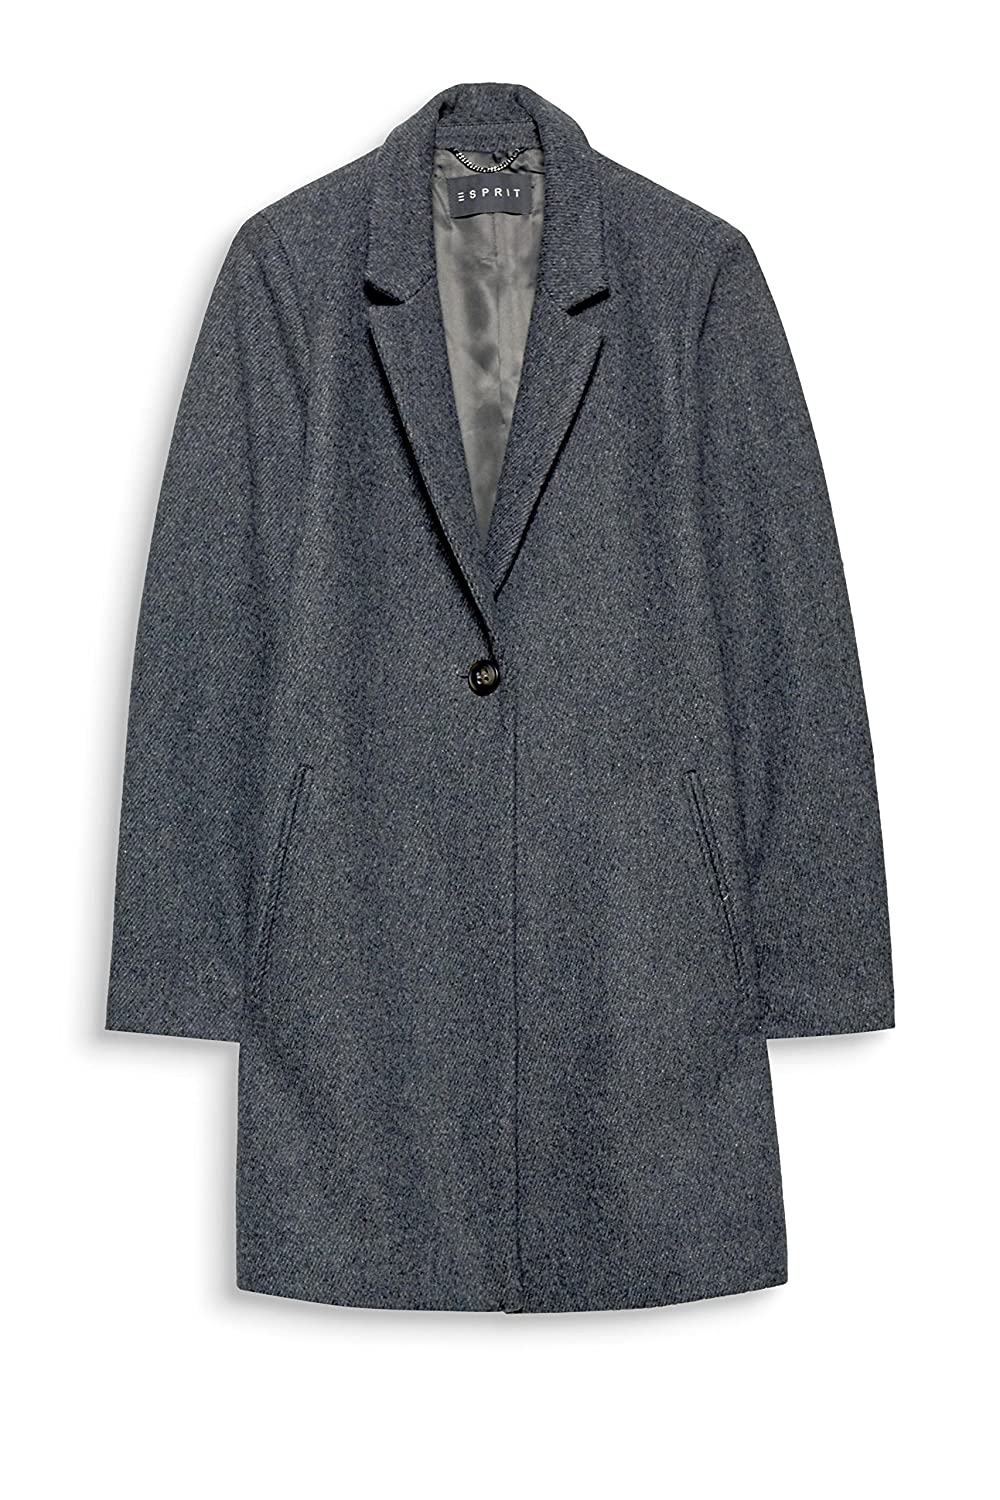 ESPRIT Collection 107eo1g026, Abrigo para Mujer, Gris (Medium Grey 5 039), 34: Amazon.es: Ropa y accesorios